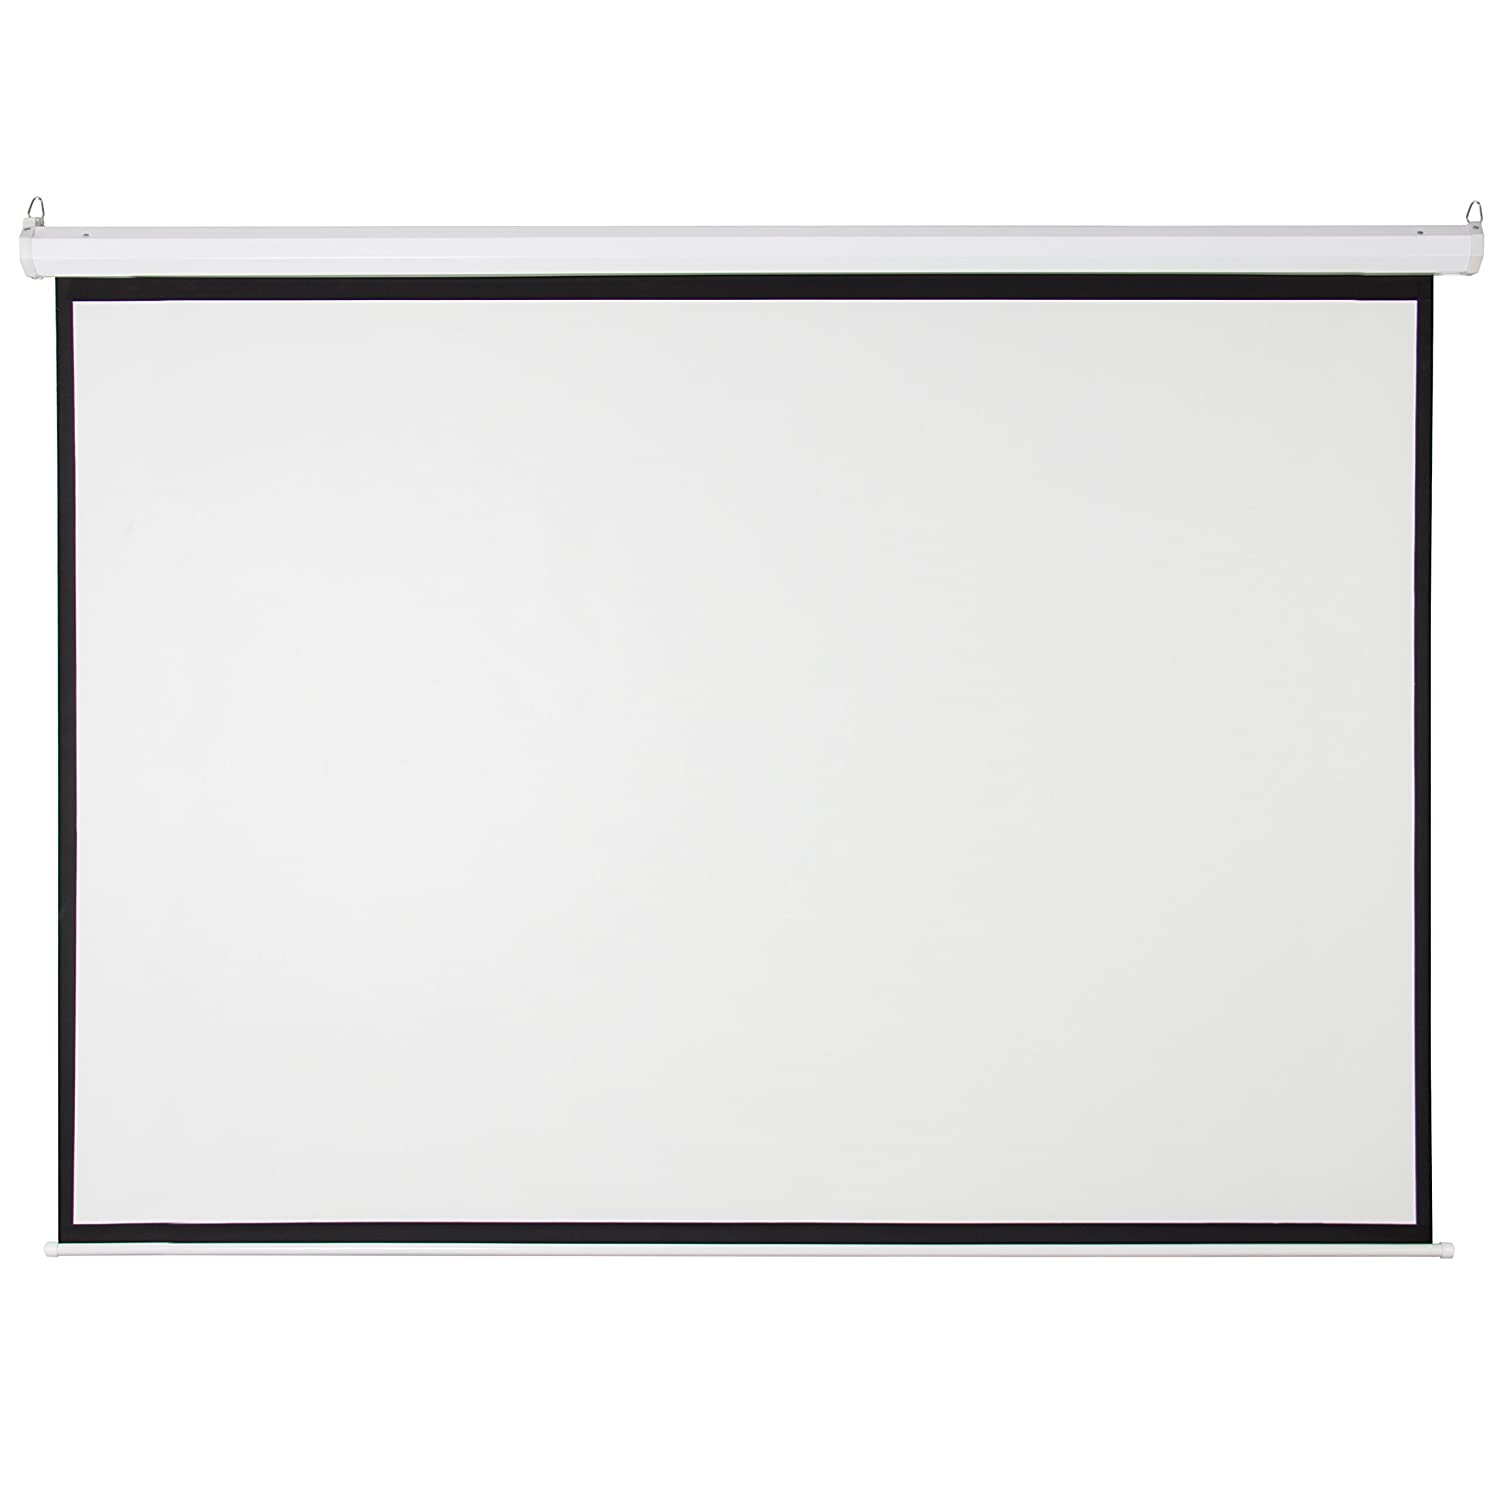 amazon com best choice products motorized electric auto hd microwave wiring-diagram amazon com best choice products motorized electric auto hd projection screen, 100 inch, 4 3 display electronics